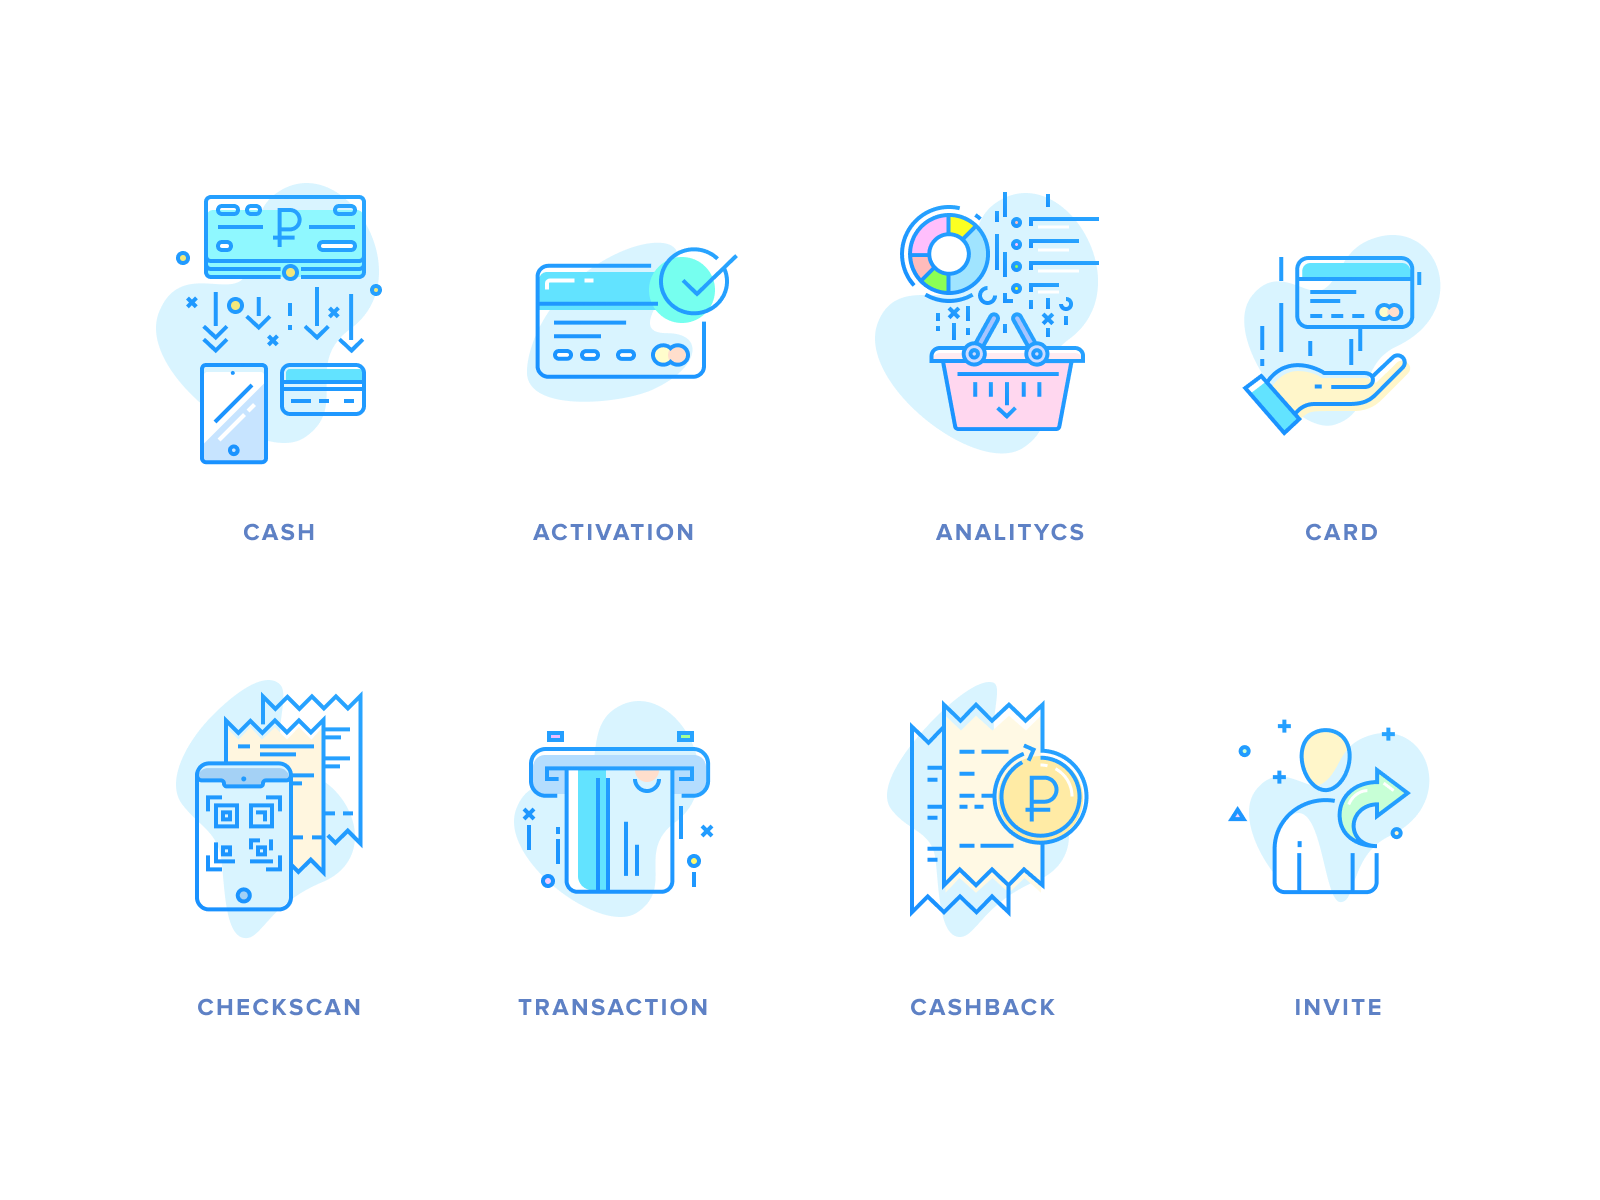 cashback icon set by bulat zalyaev on dribbble cashback icon set by bulat zalyaev on